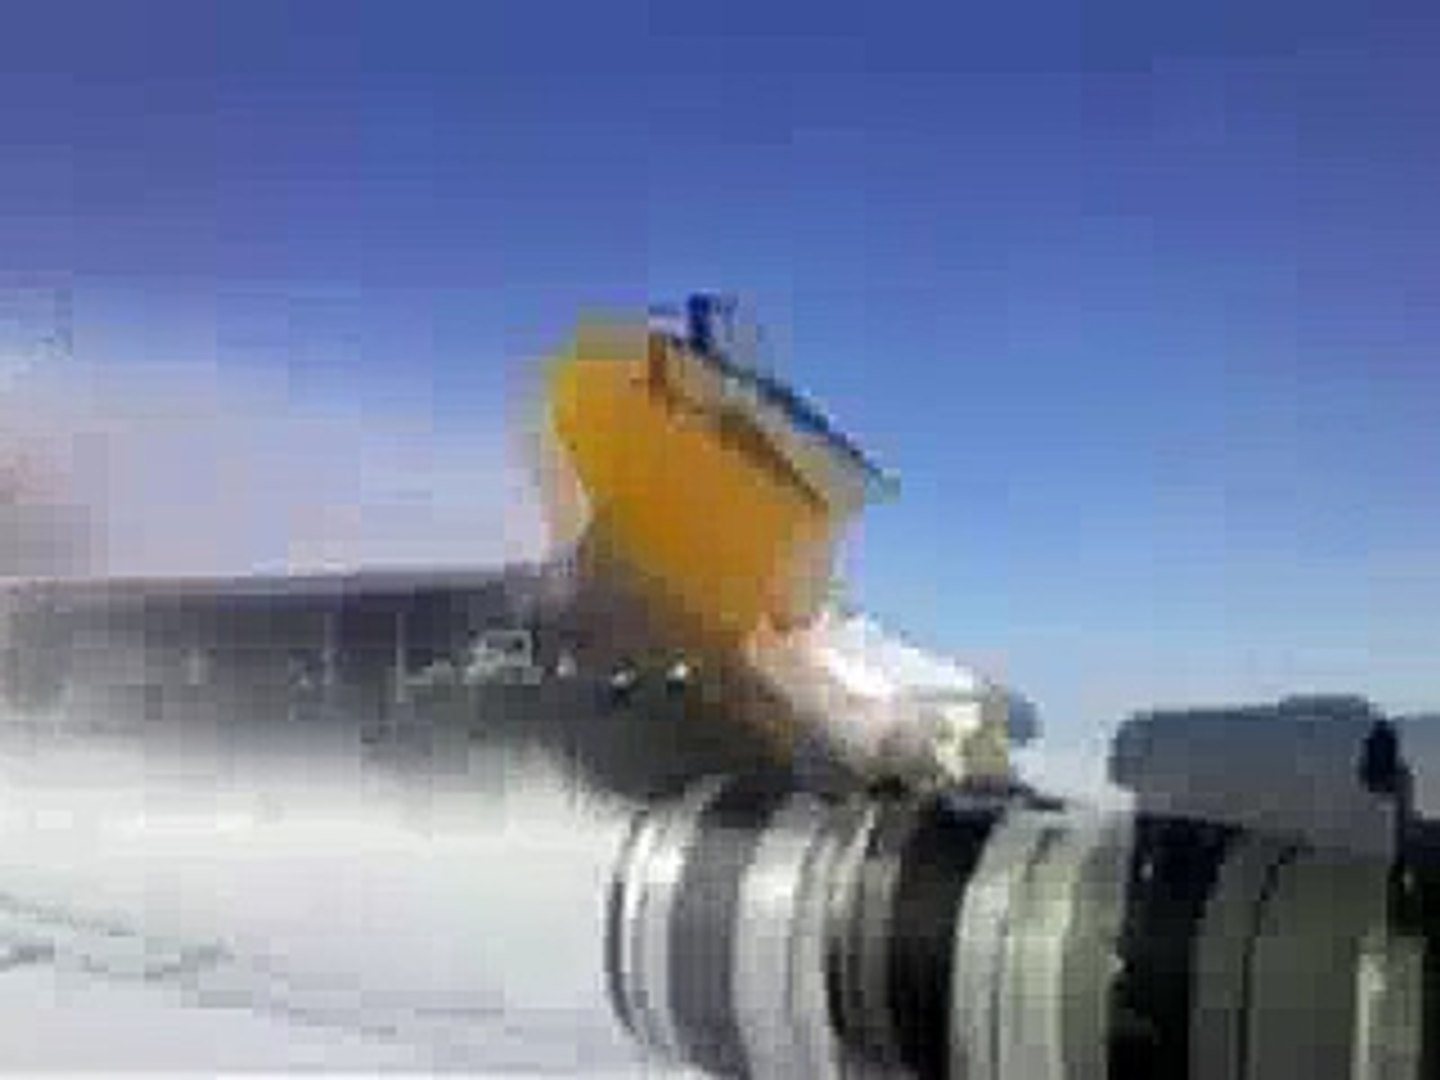 Snow_Removal_Train Technology